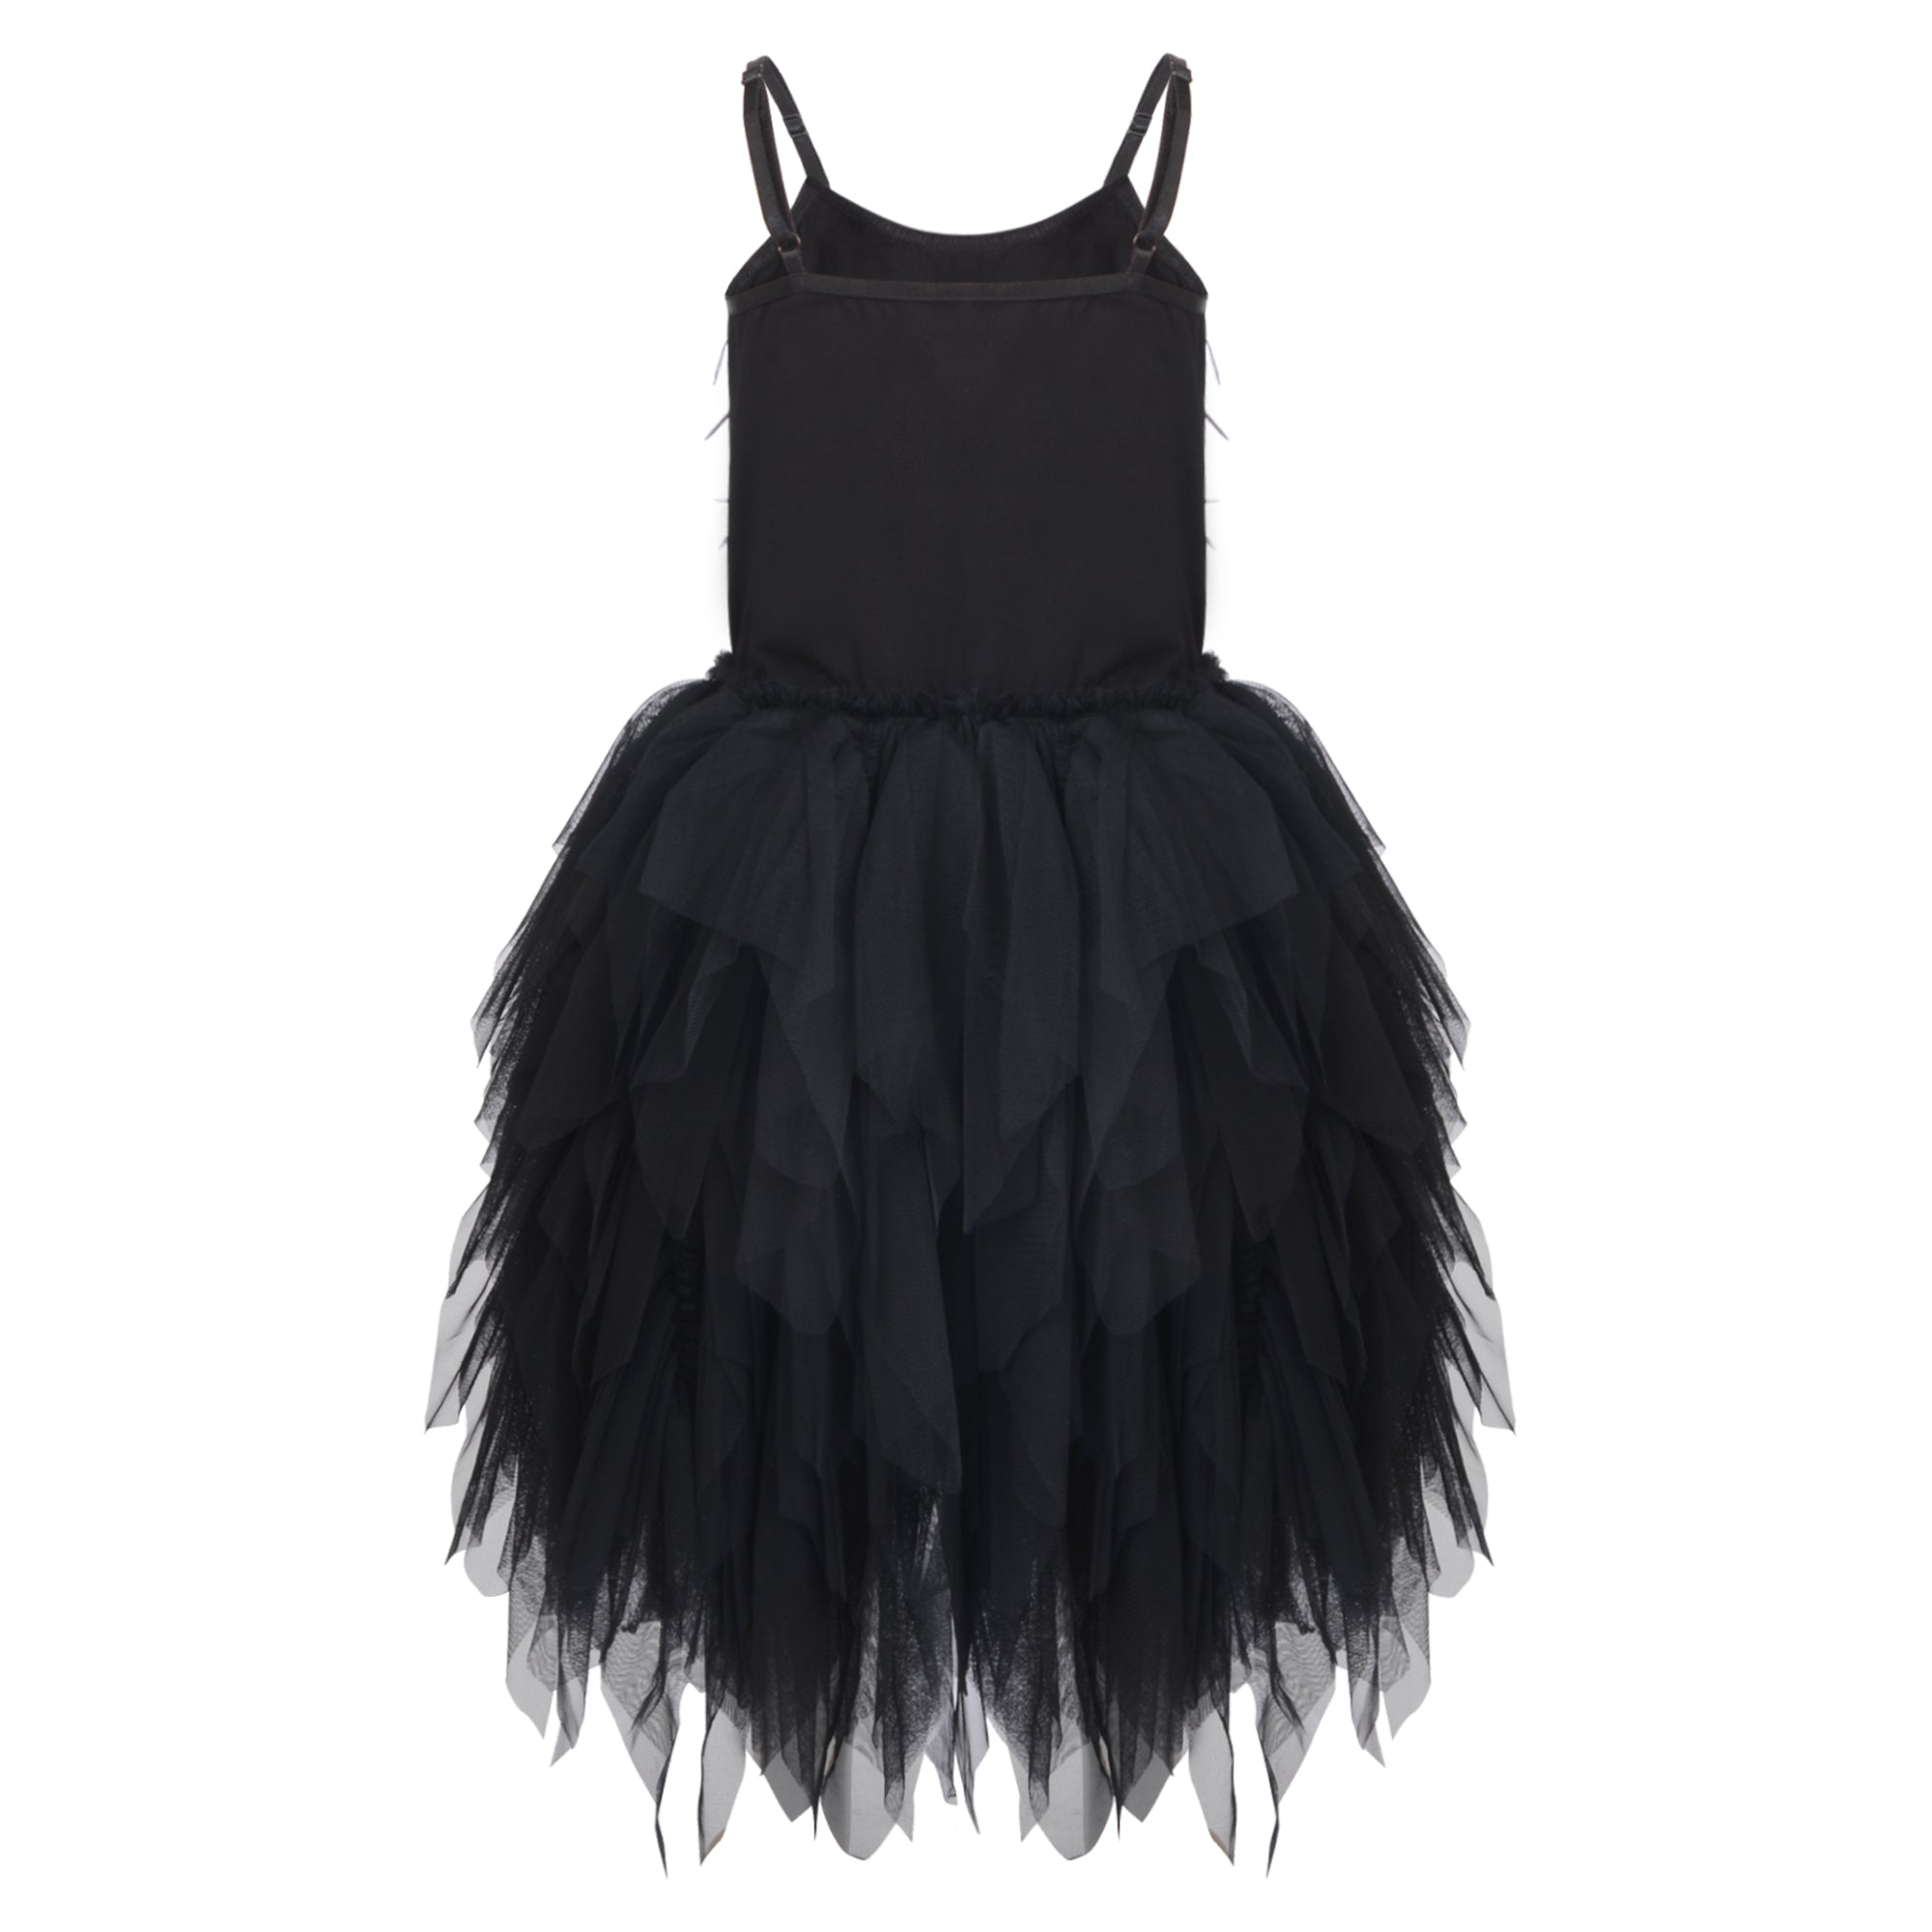 Girls black Frilly and Feathers Dress